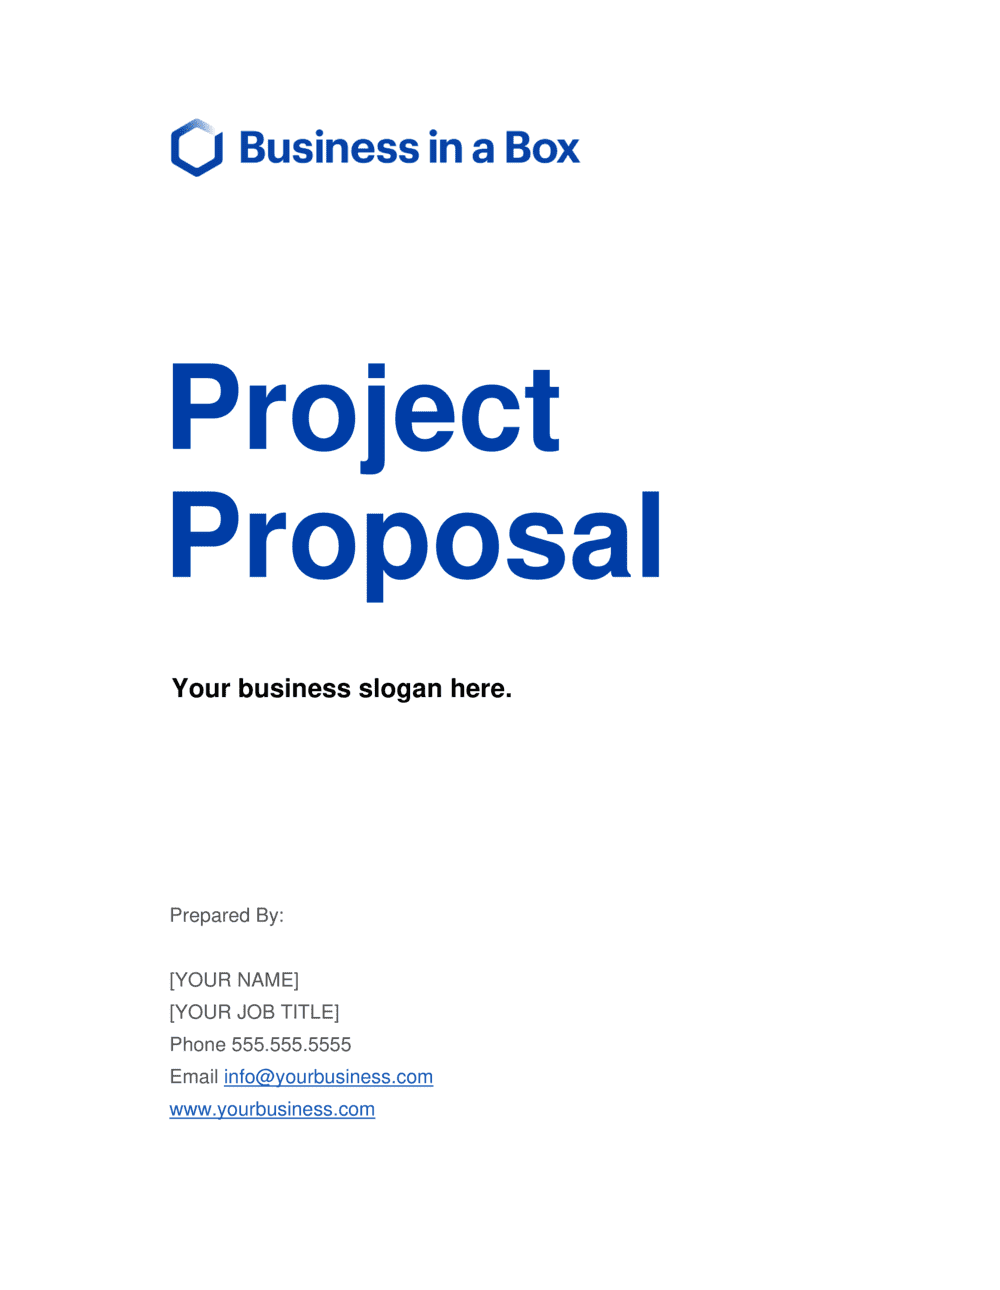 Business-in-a-Box's Project Proposal Template